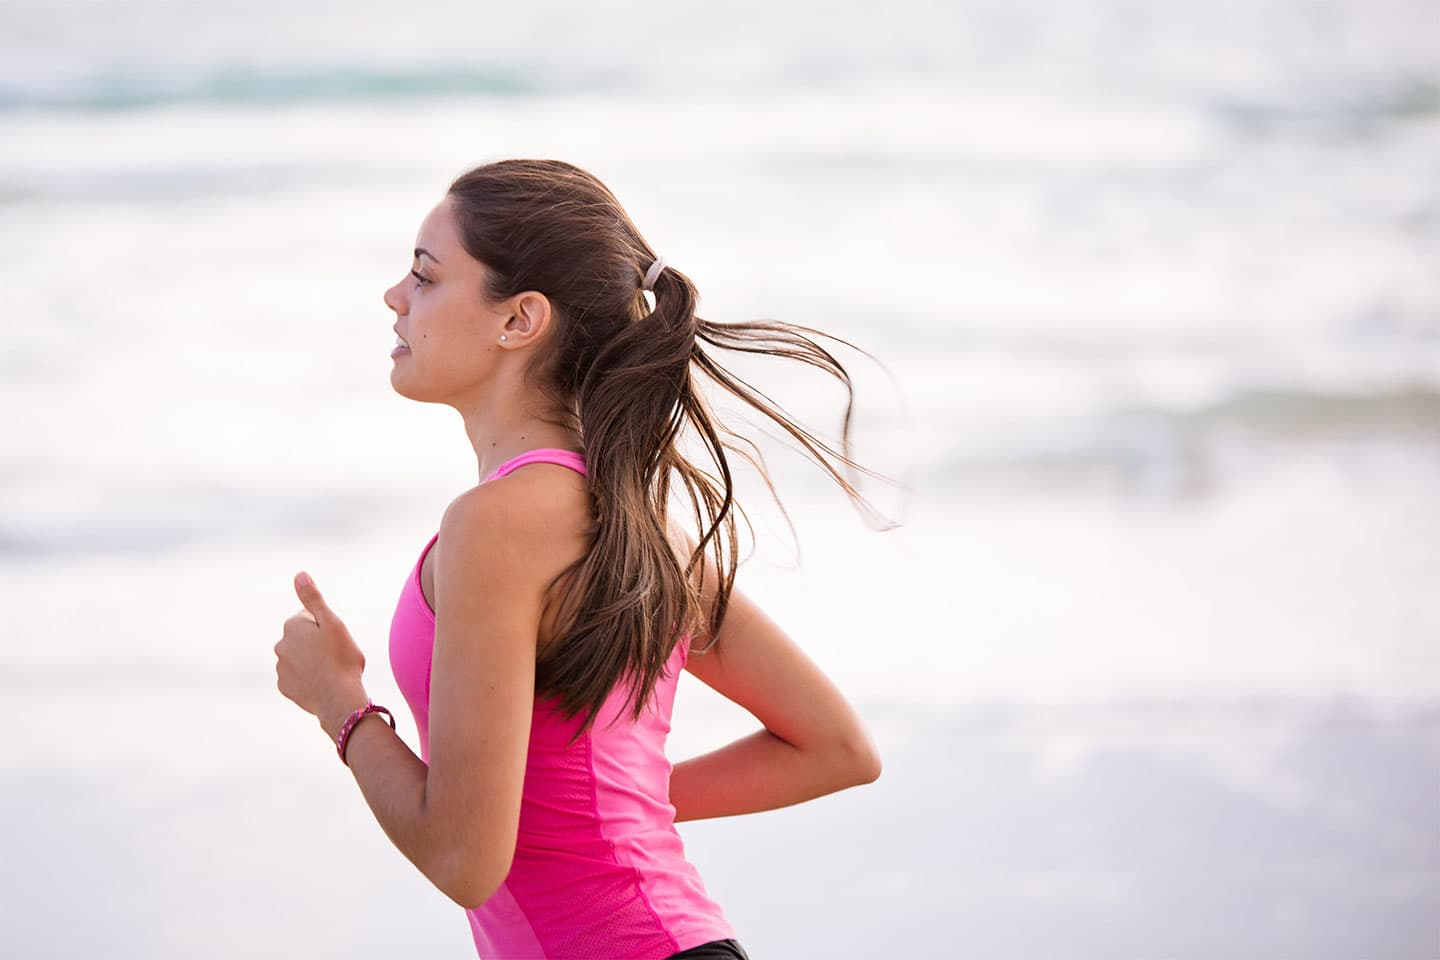 Woman with pony tail in pink tank top running on beach shore